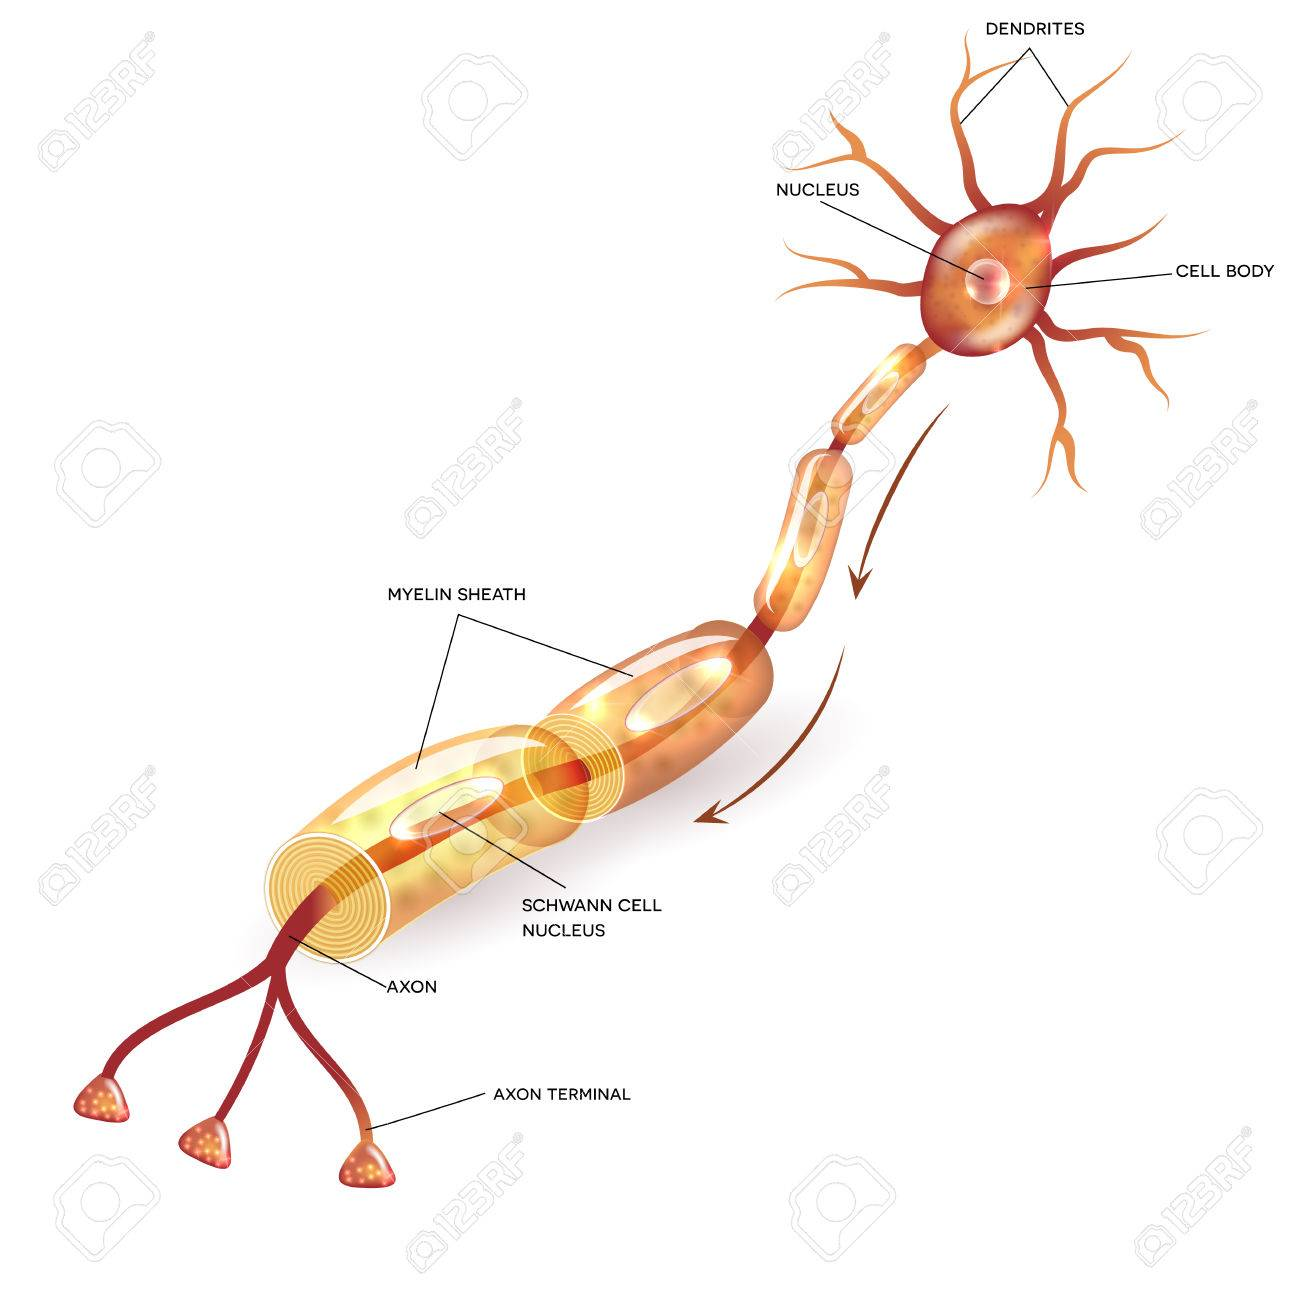 Neuron, Nerve Cell Axon And Myelin Sheath Substance That Surrounds ...